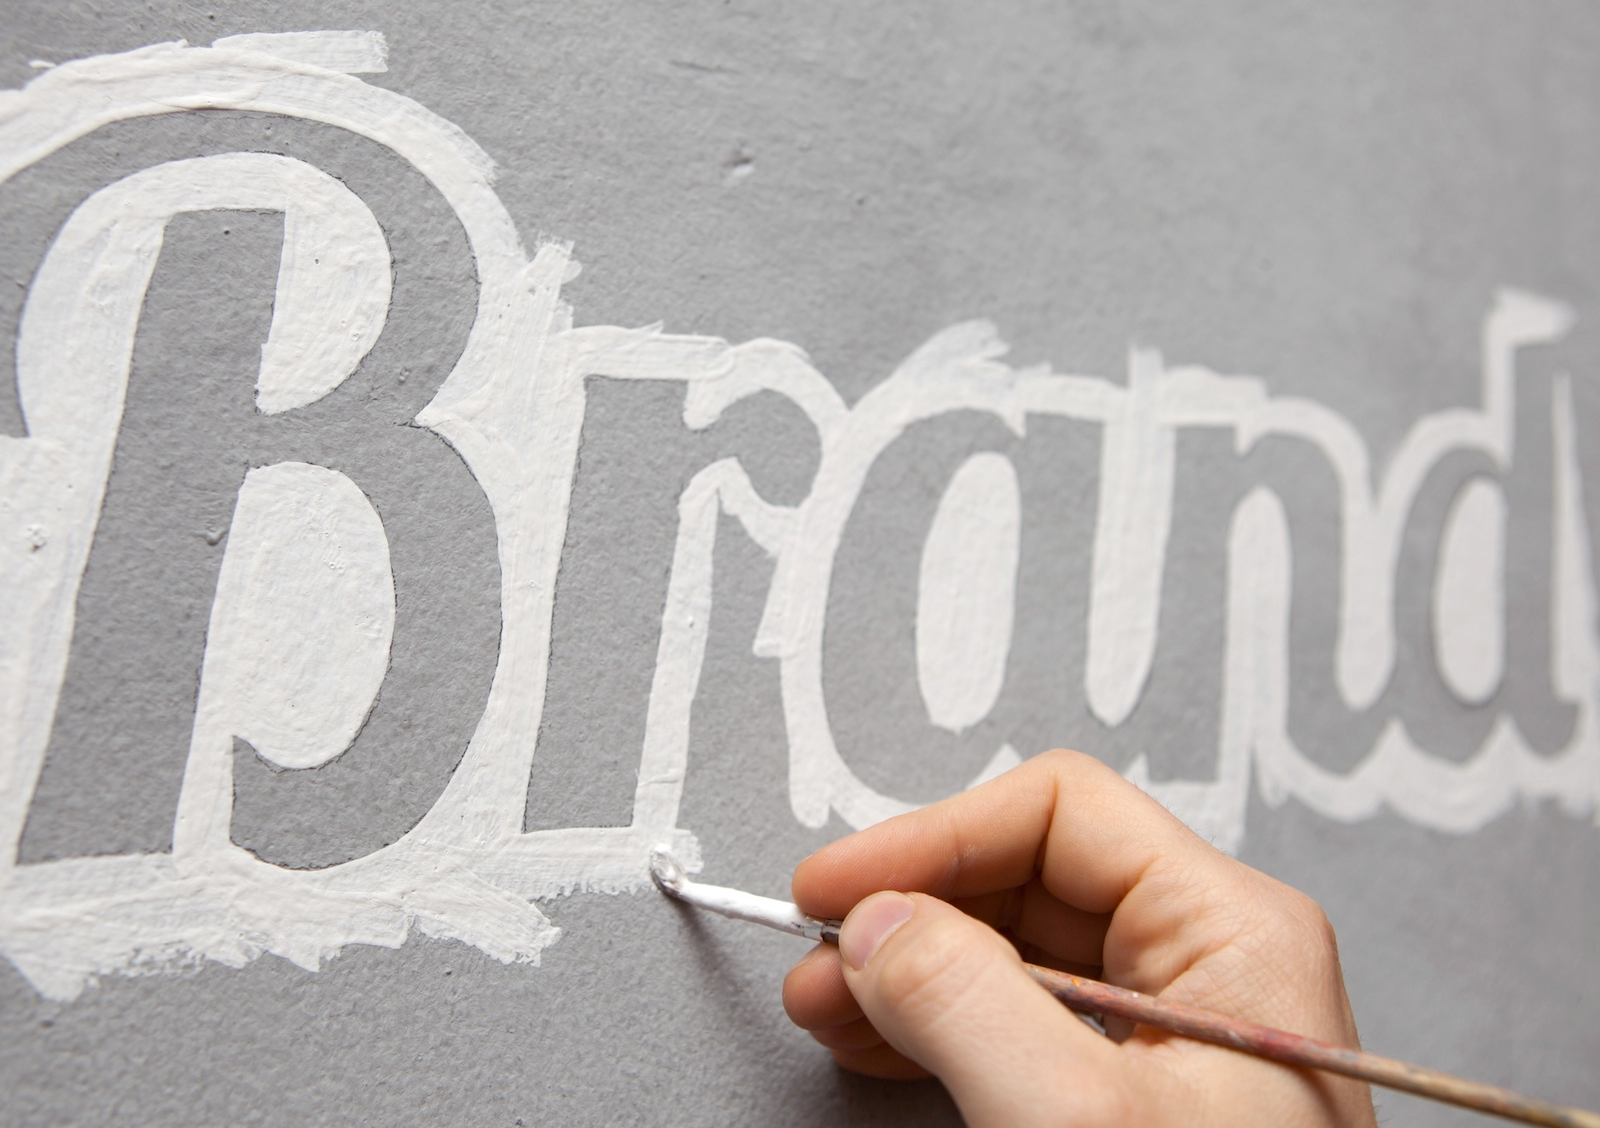 How to rebrand your small business [2019 edition]